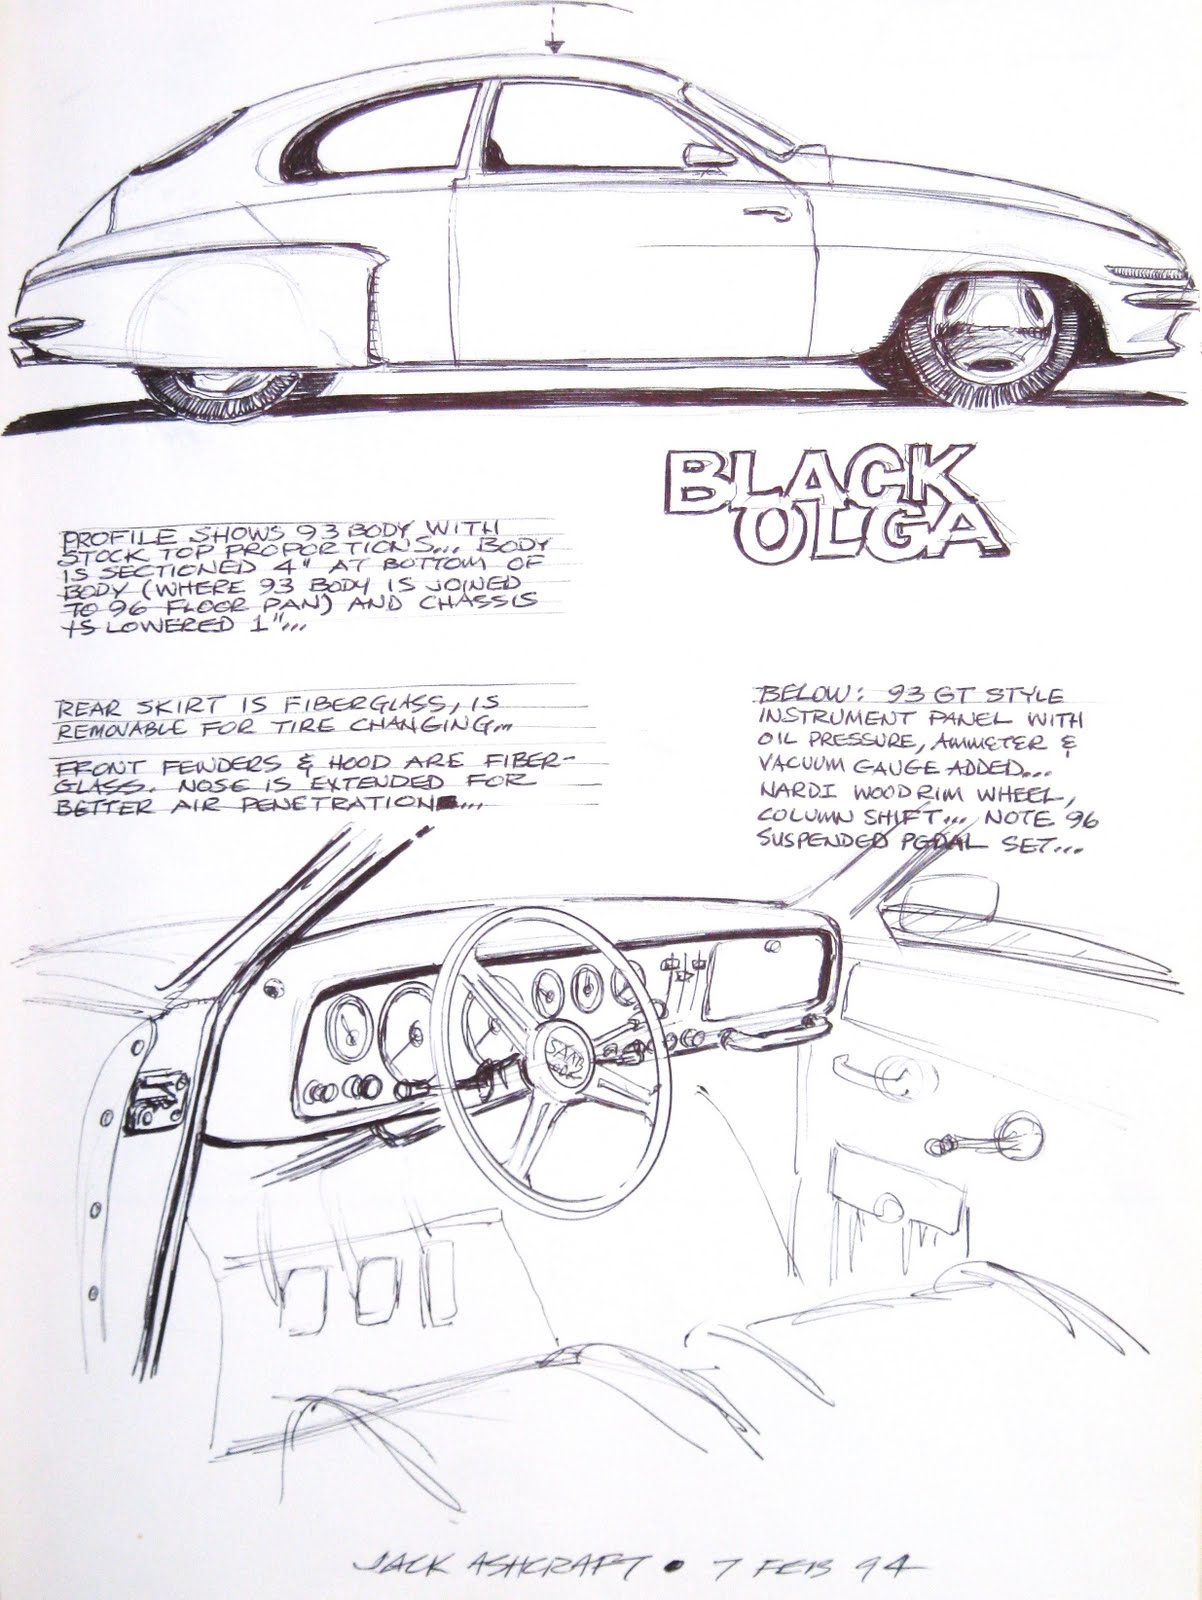 Design of car jack - The Bottom 4 Inches Of The Doors And Fenders Were More Dust Than Metal So Jack Sketched Up Some Ideas For A Chopped And Channeled Street Rod